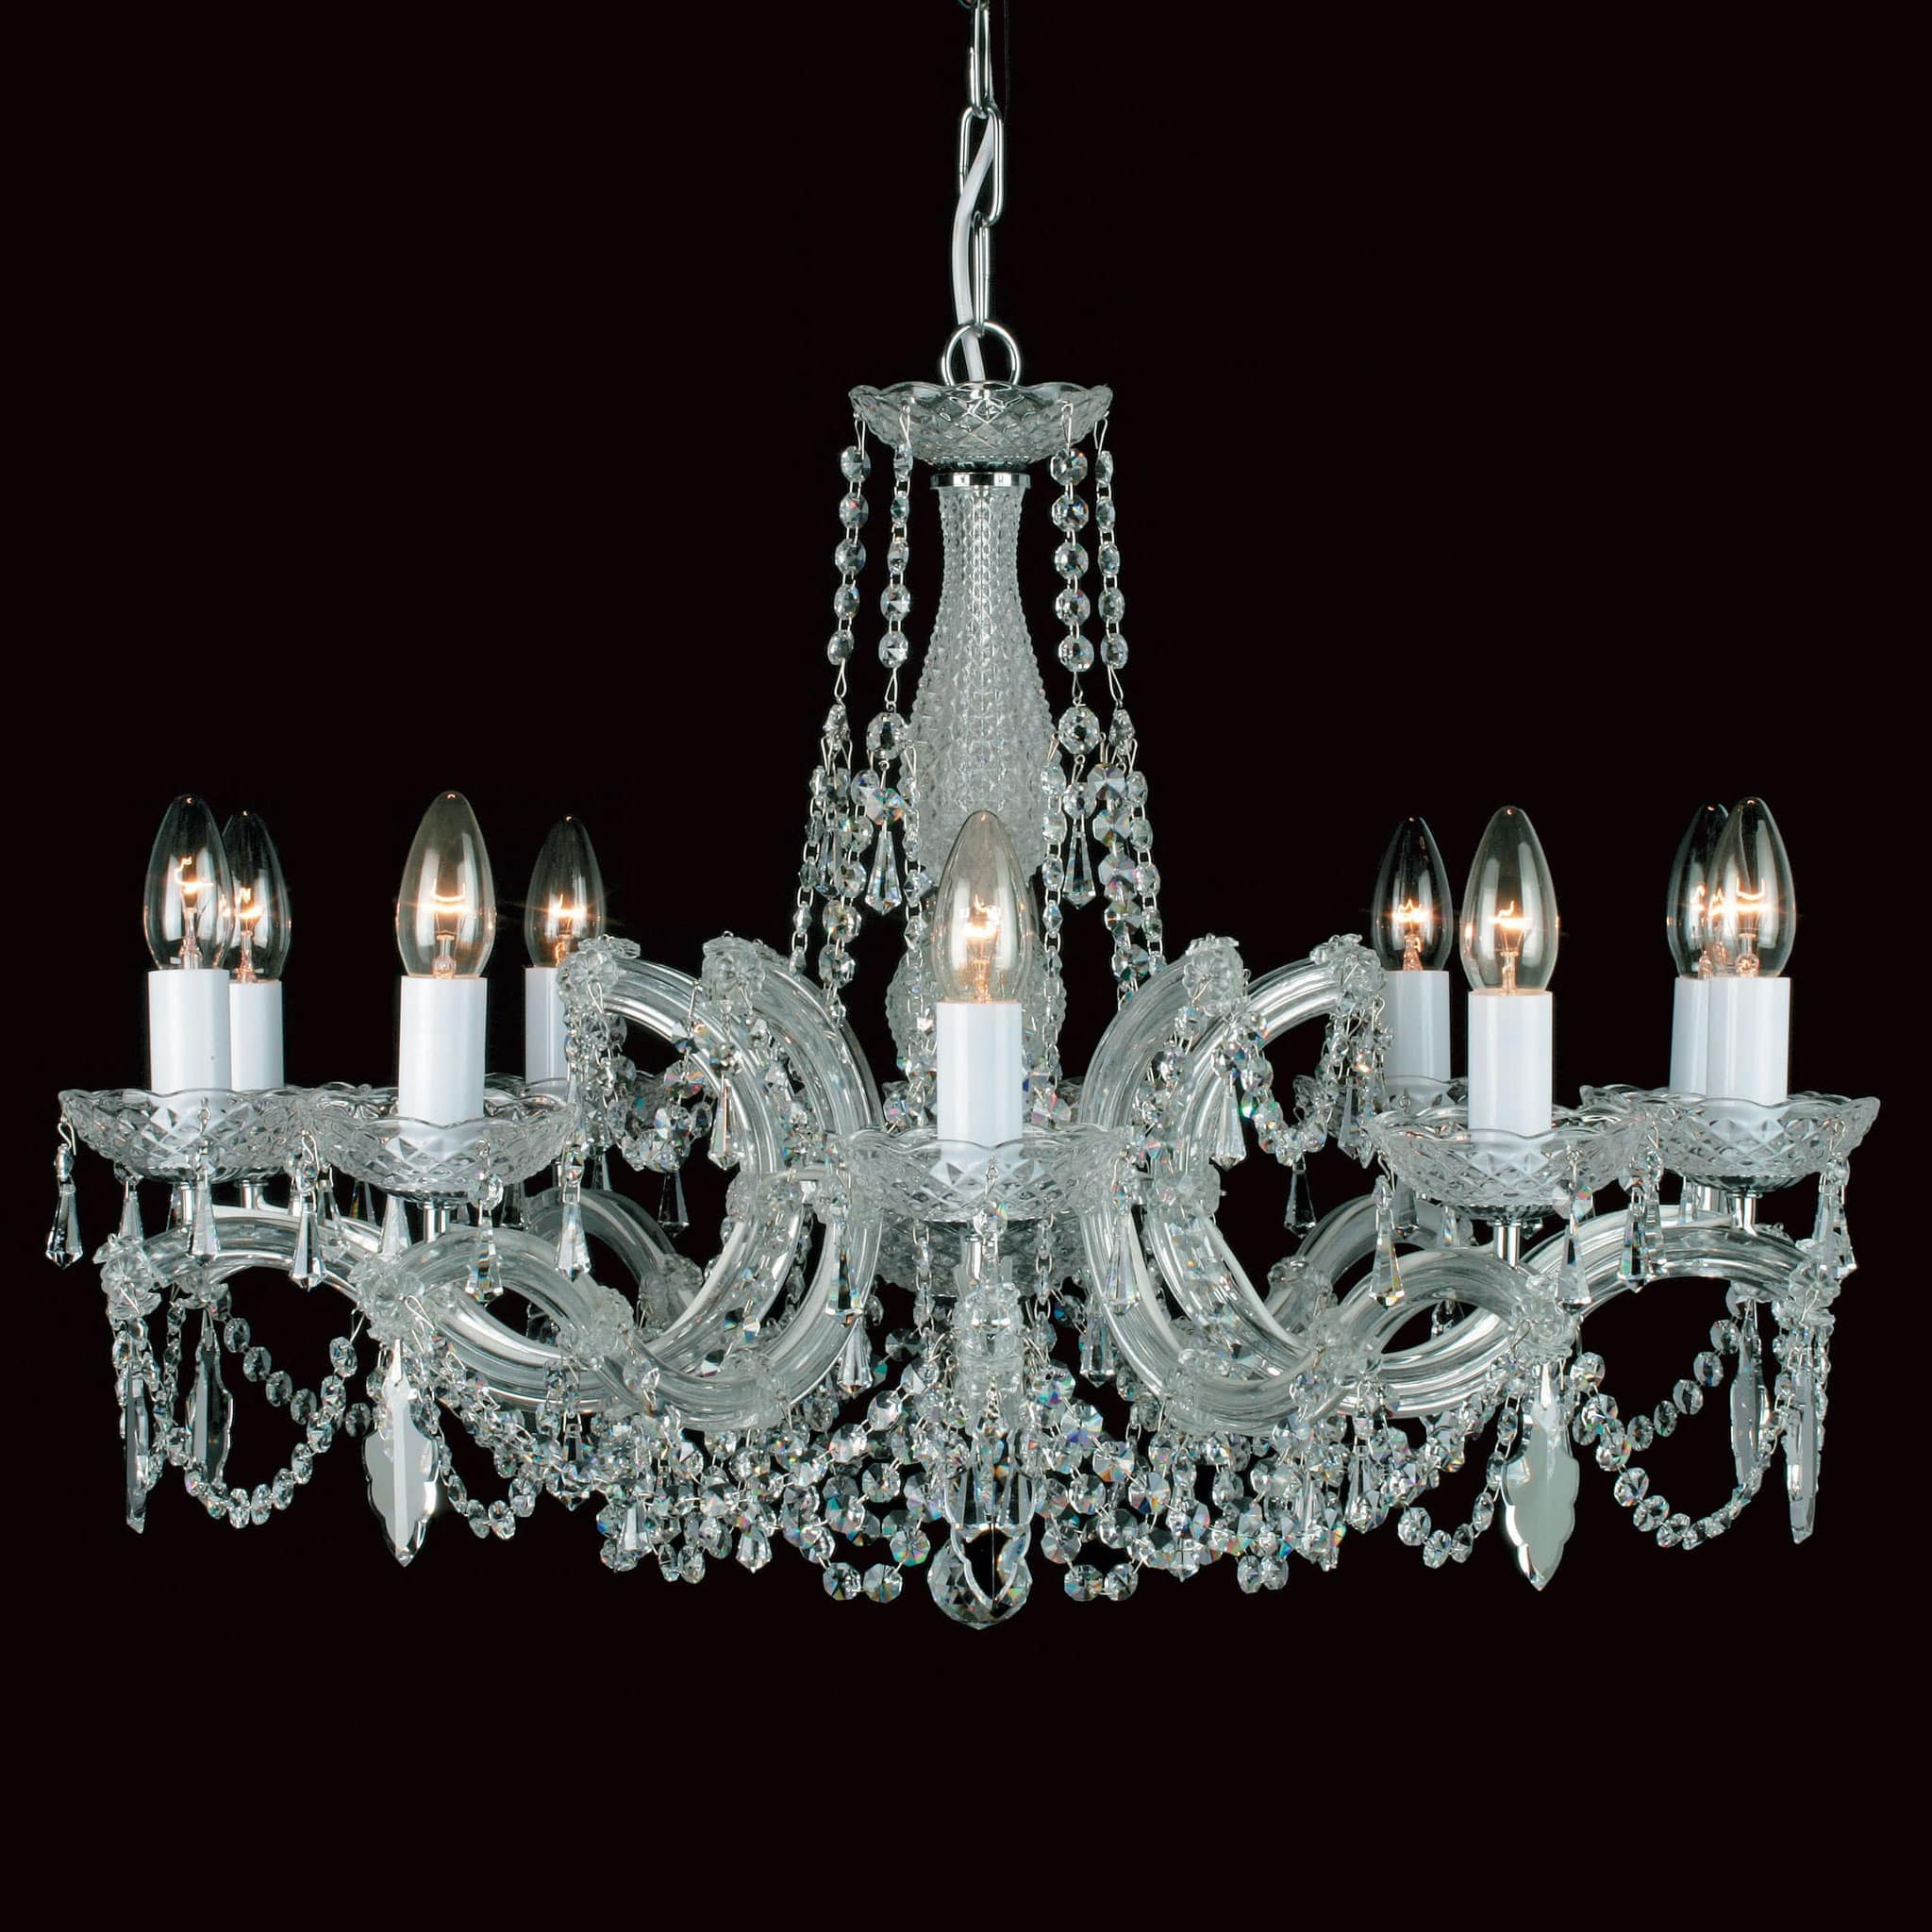 Impex Marie Therese 10 Light Chrome Crystal Chandelier CP00150/10/CH ...